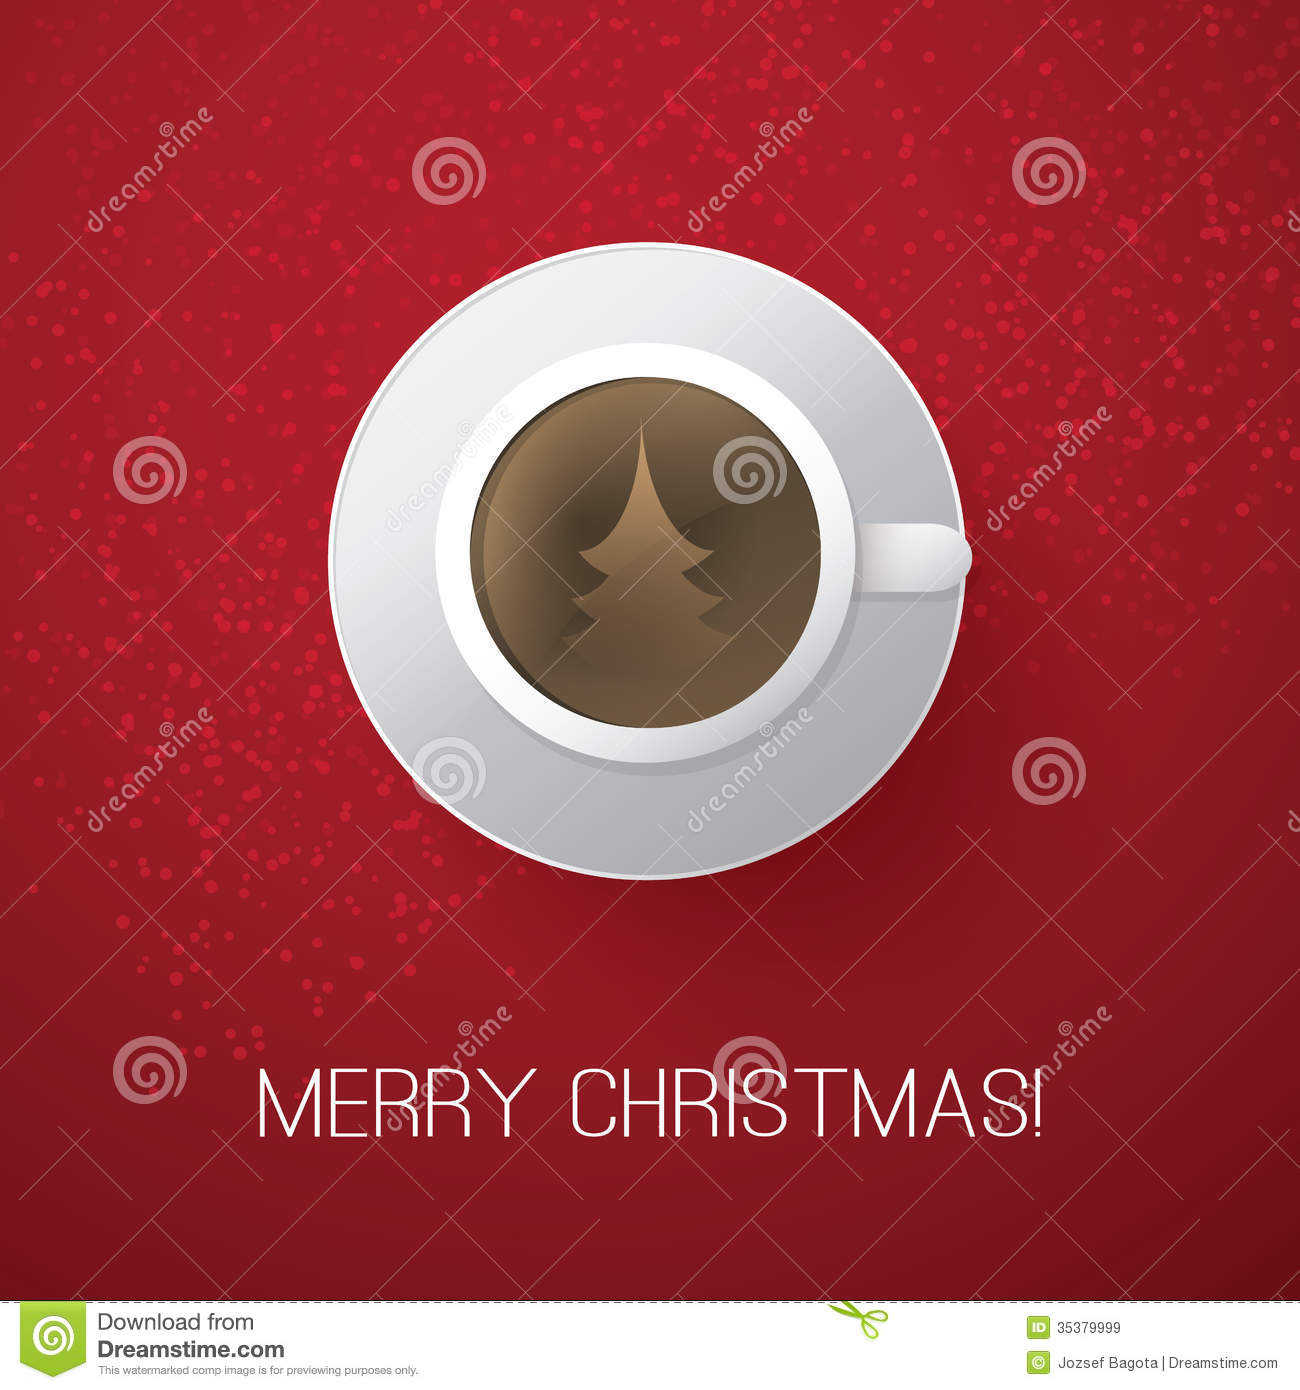 Coffee Christmas Cards.Merry Christmas Card With Coffee Cup Stock Vector